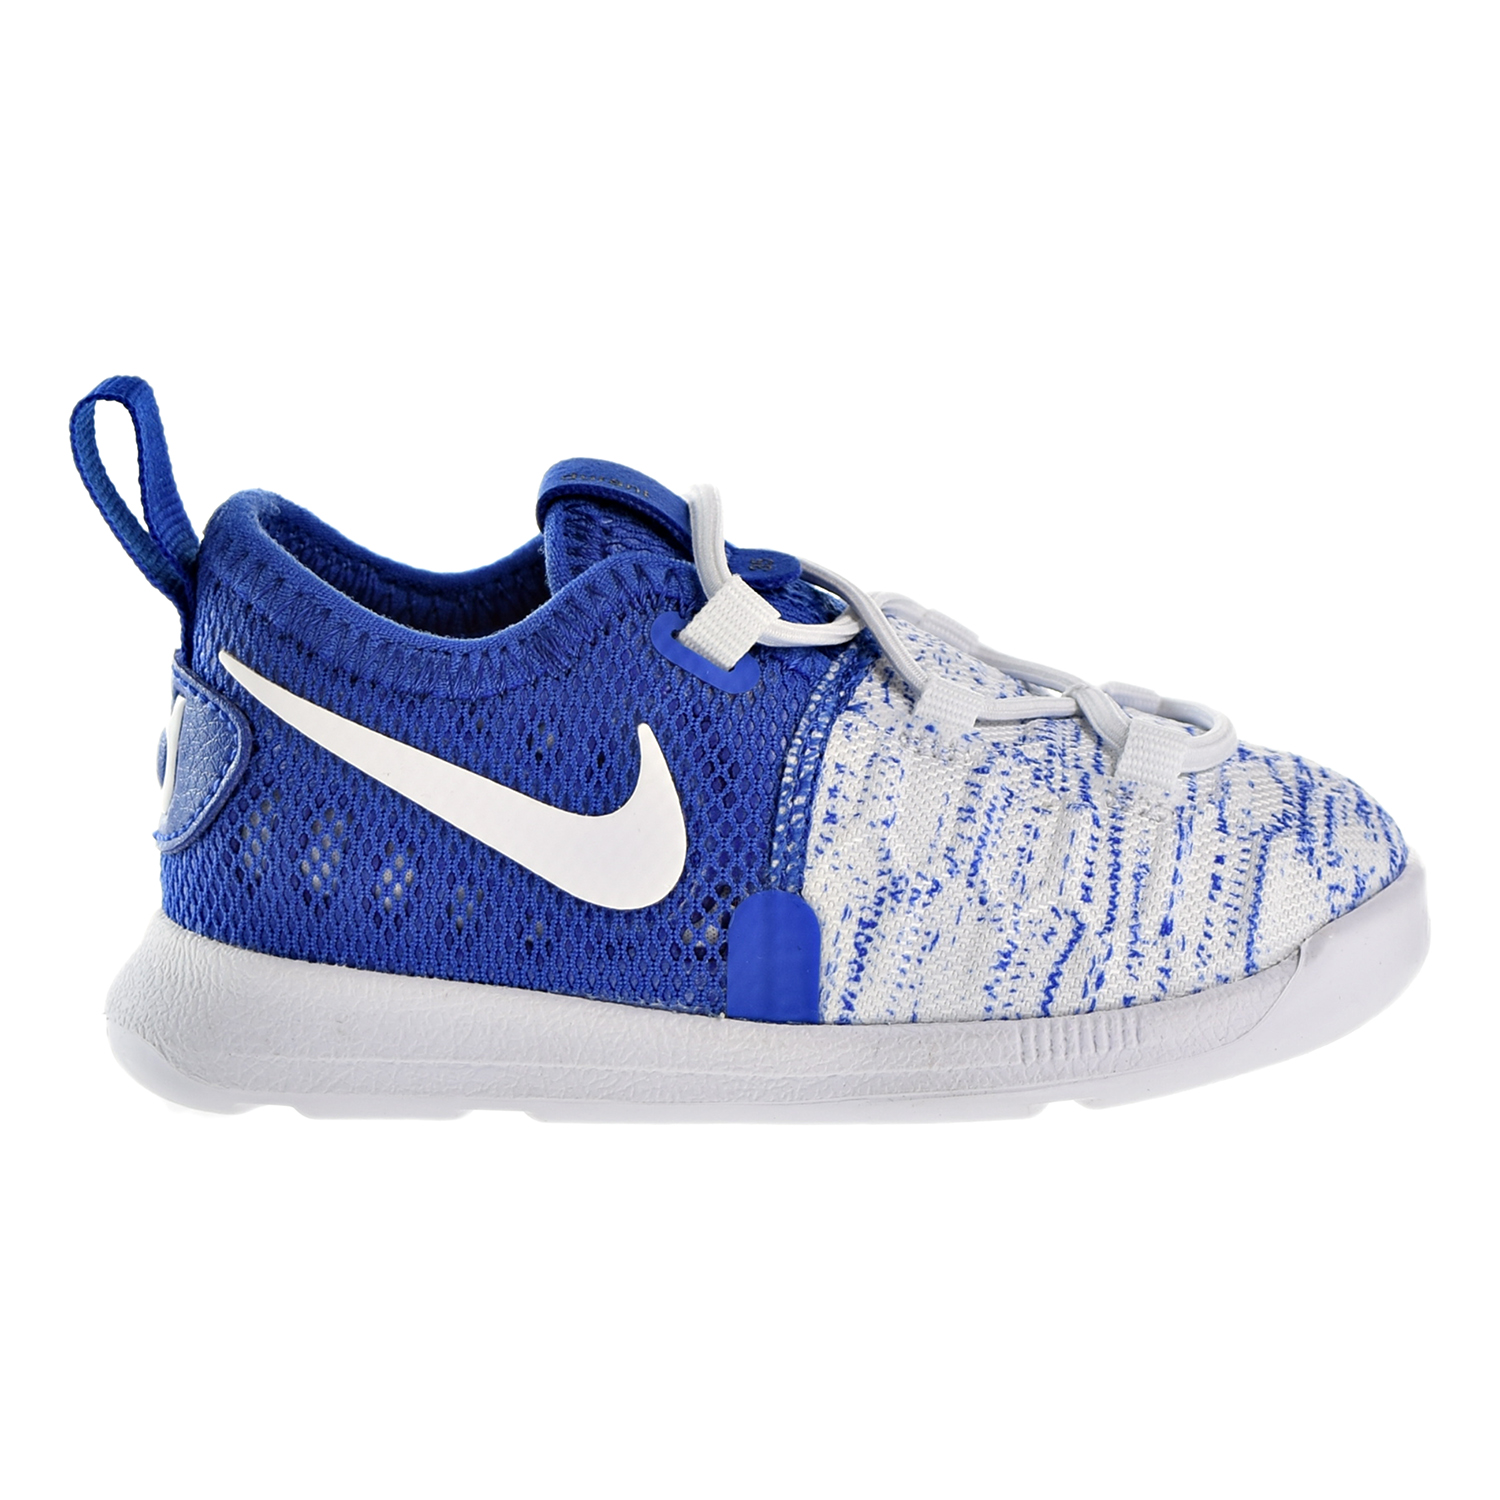 5b00ac14982 ... usa nike nike kd9 infant toddlers shoe game royal white 855910 411 9 m  us walmart